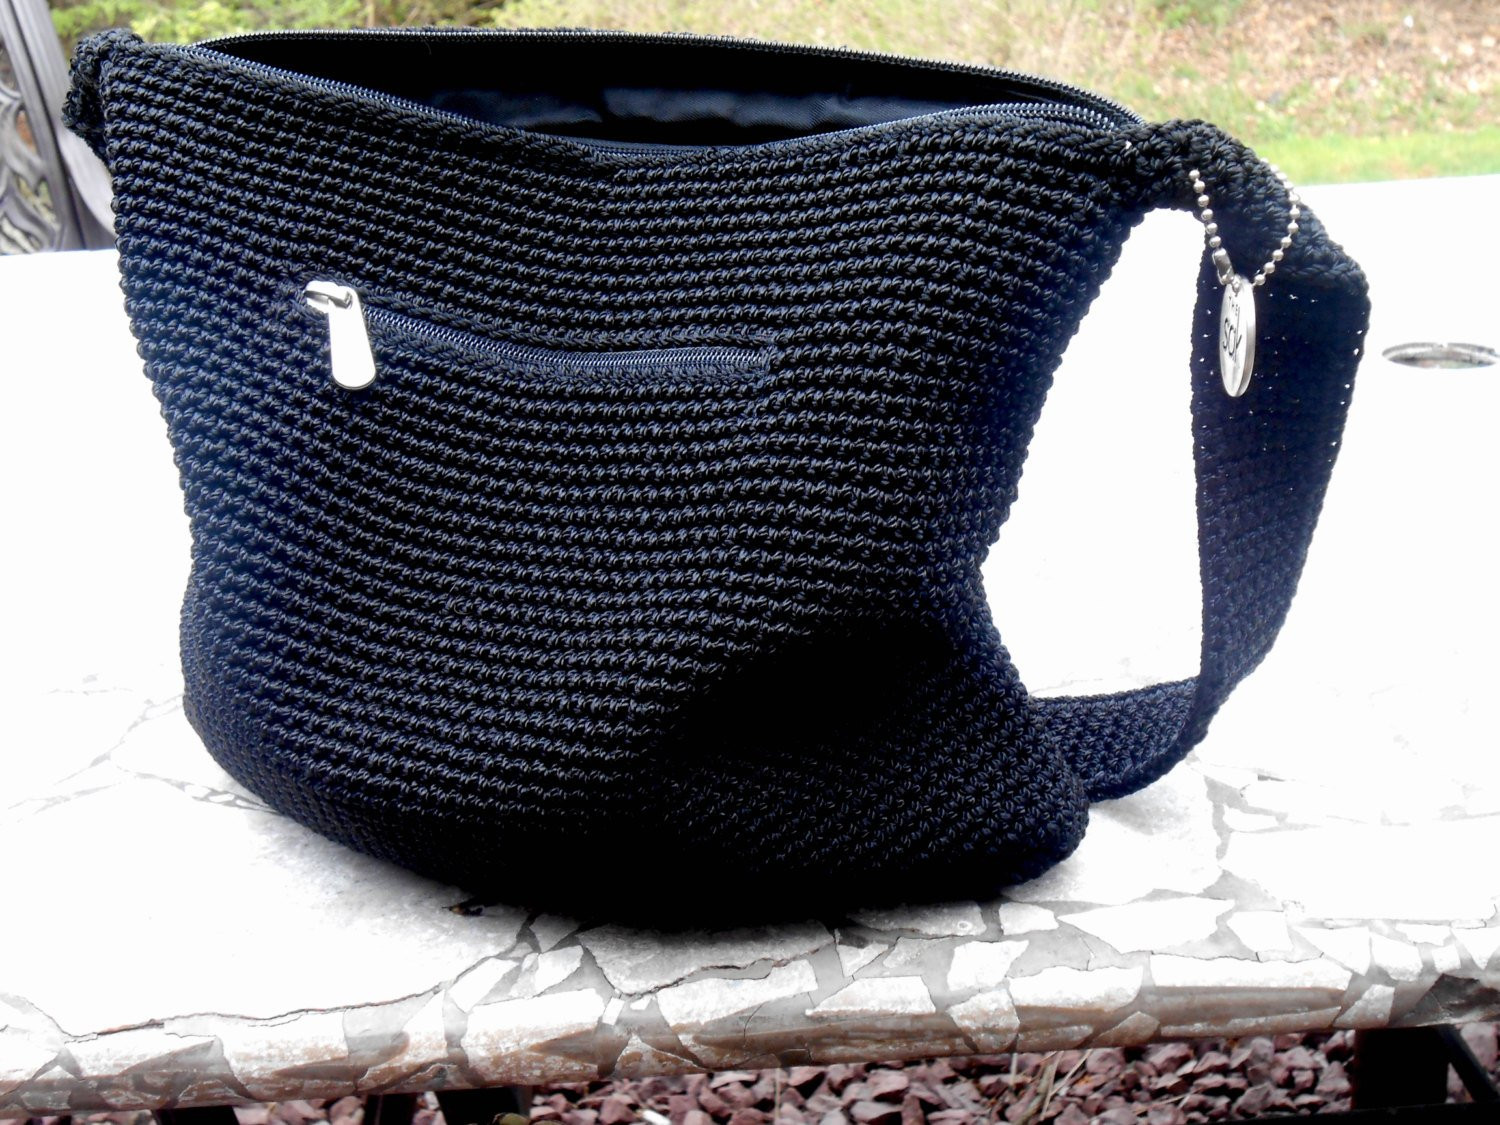 The Sak Purse Crochet Black Purse 1980s The Sak Retro